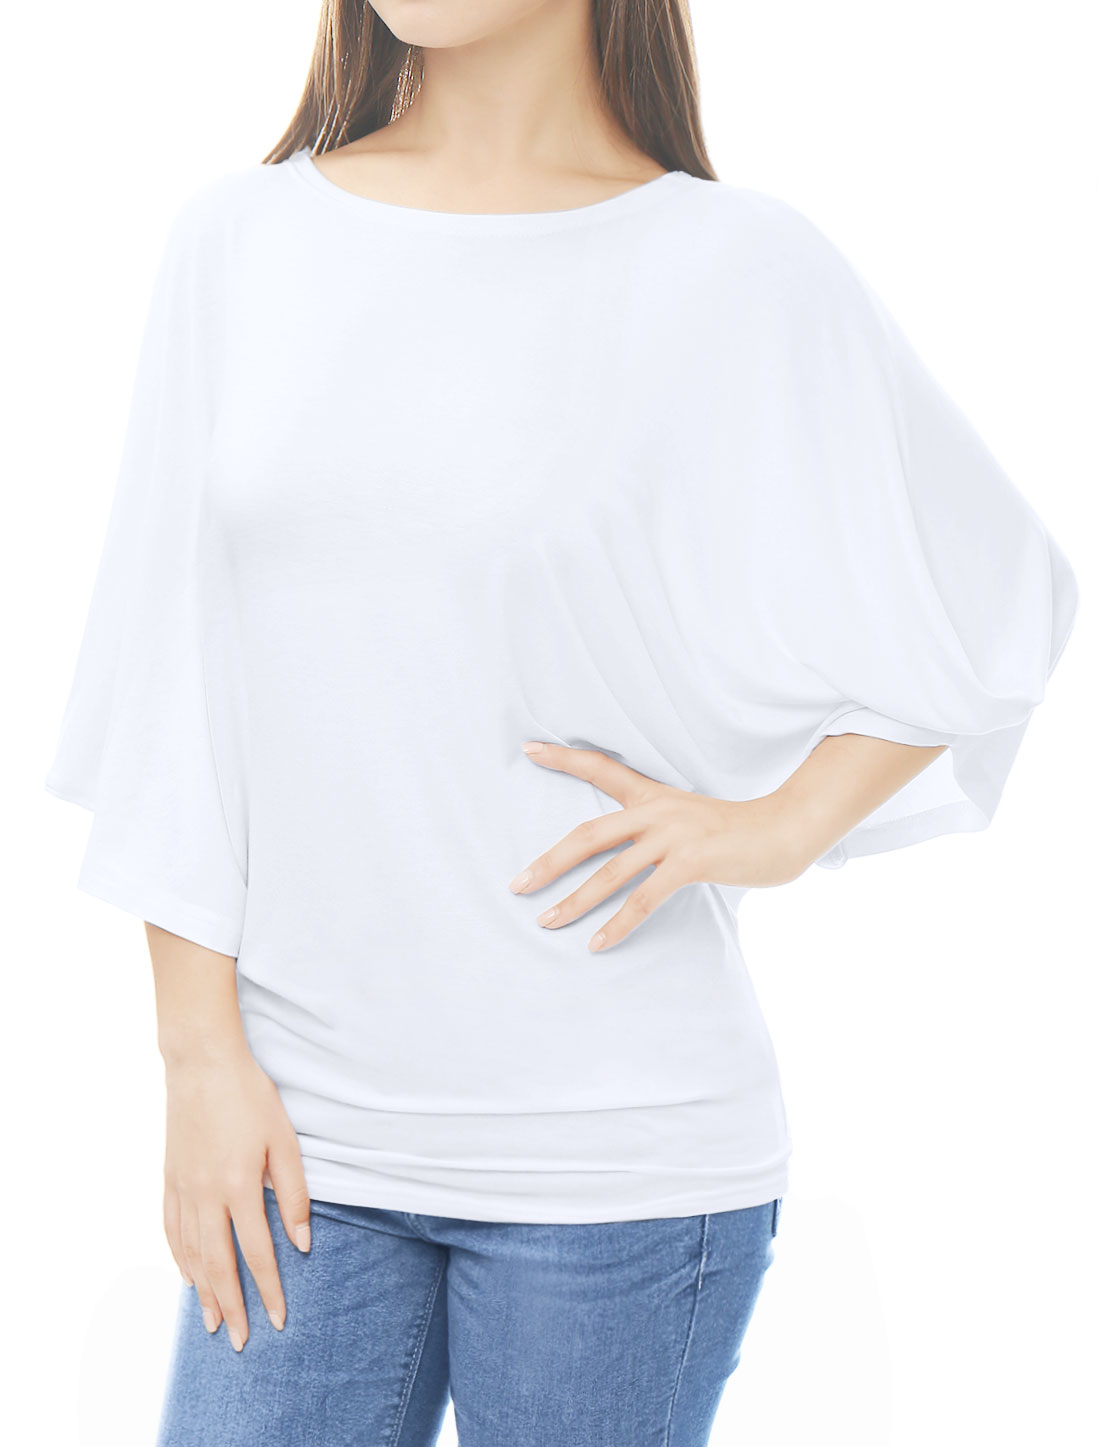 Women Boat Neck Batwing Sleeves Oversized Tunic Top White L